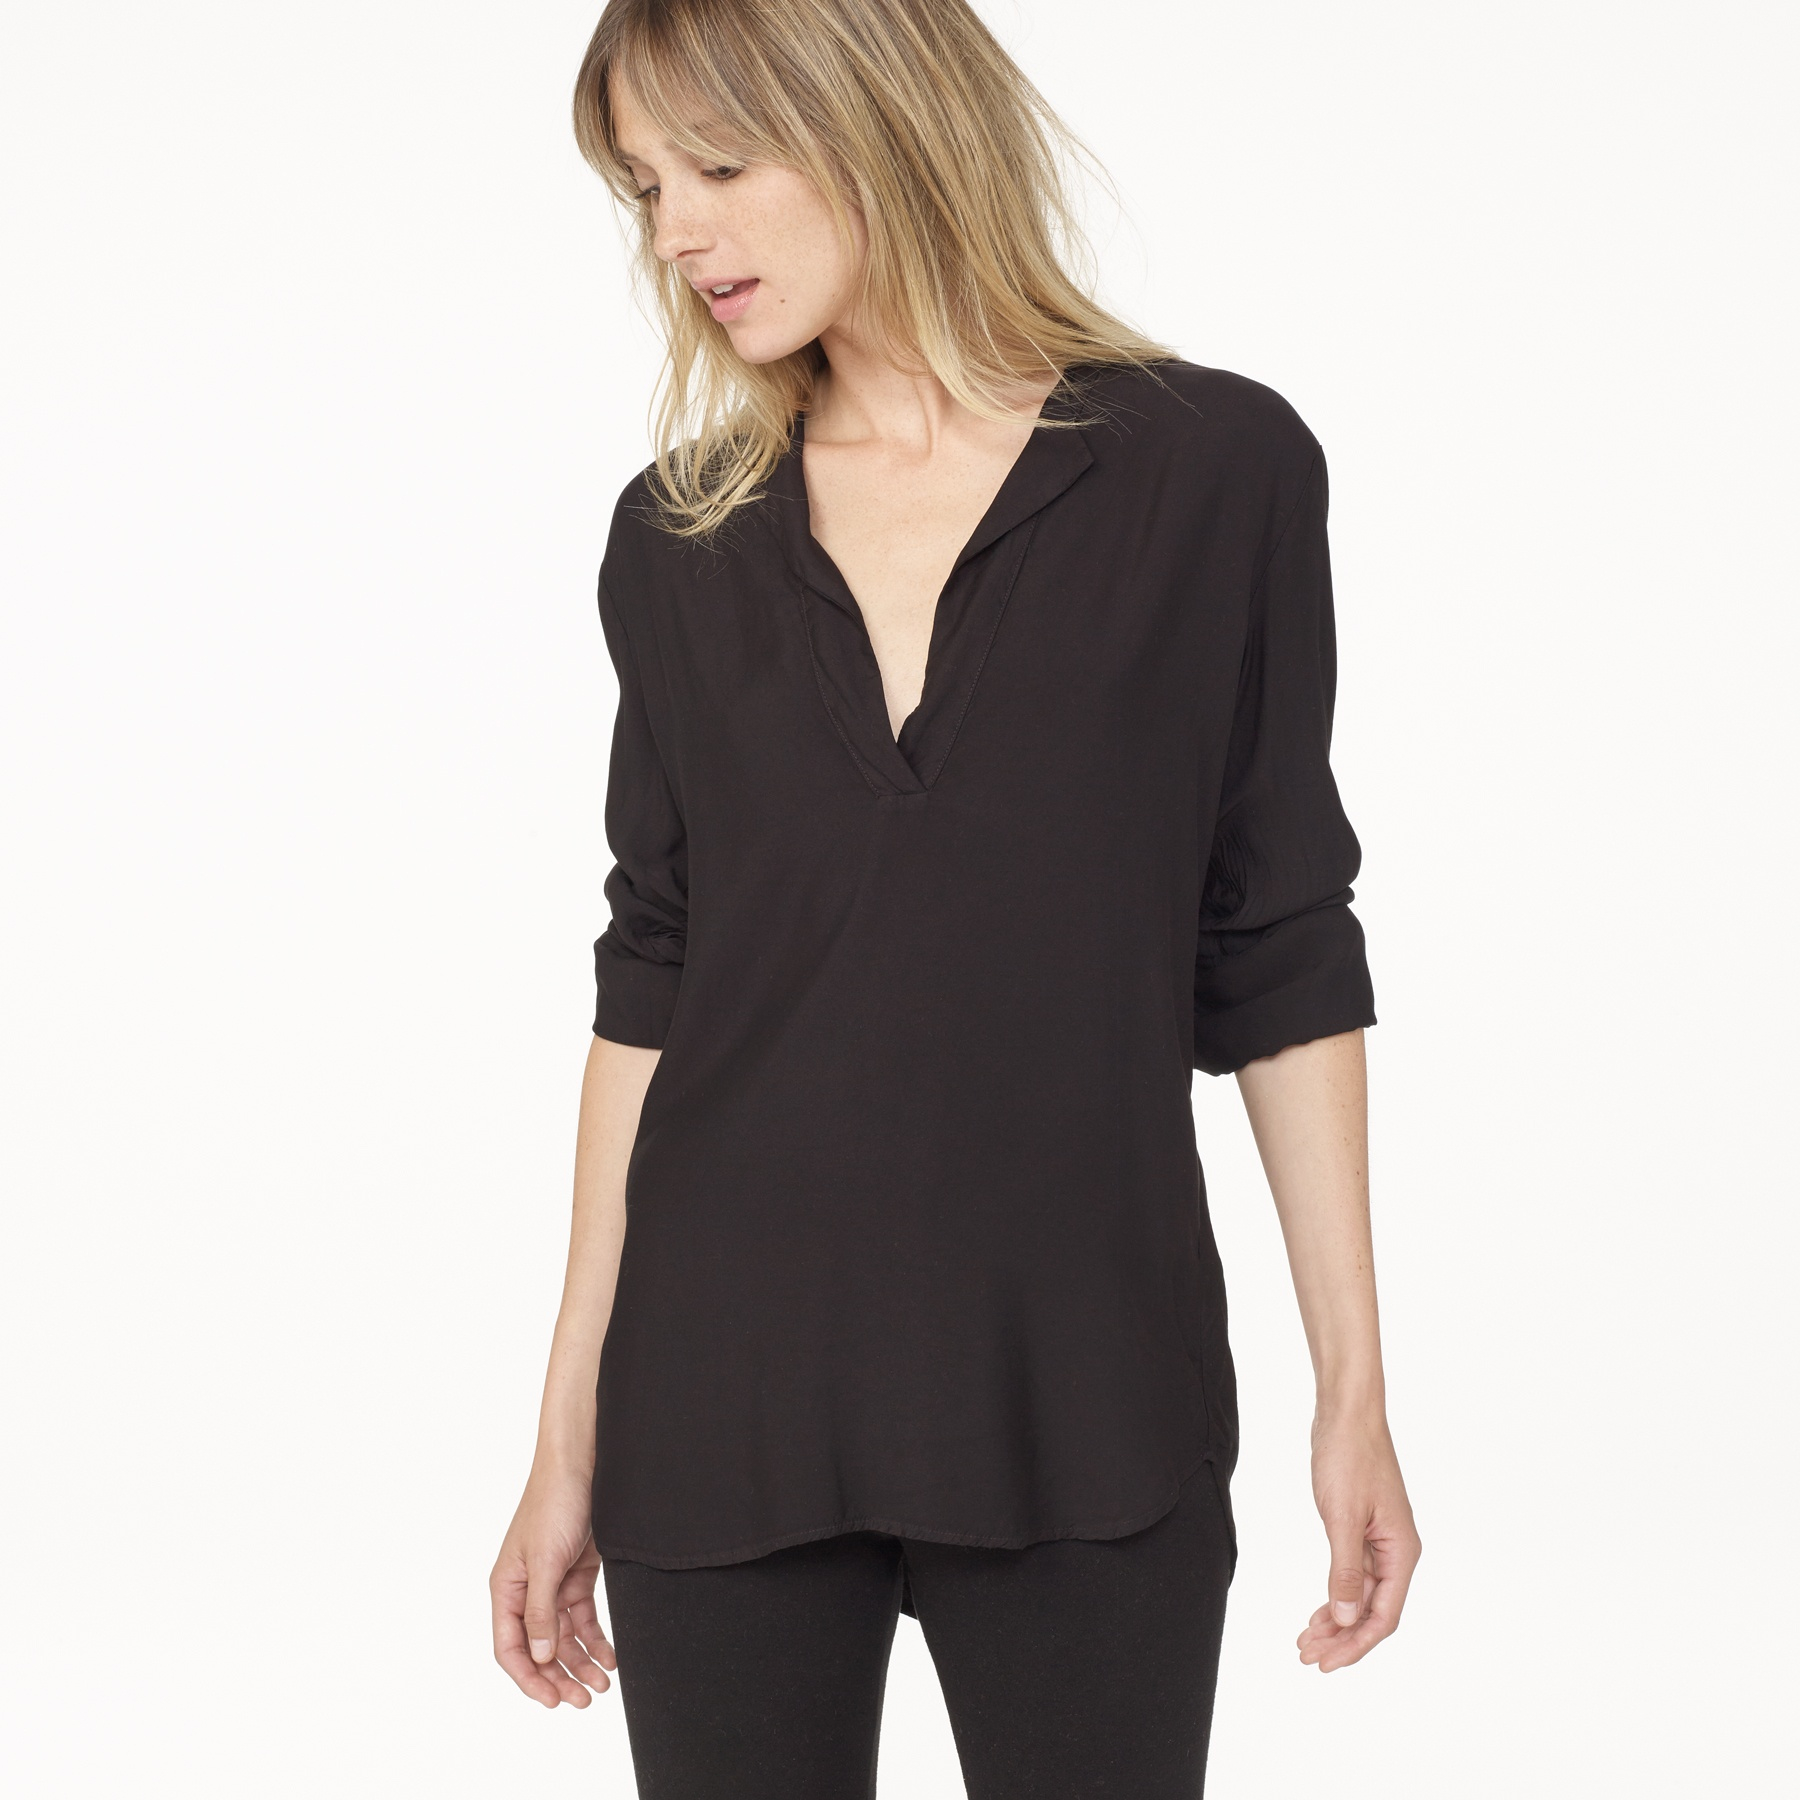 james perse sanded satin henley shirt in black lyst ForJames Perse Henley Shirt